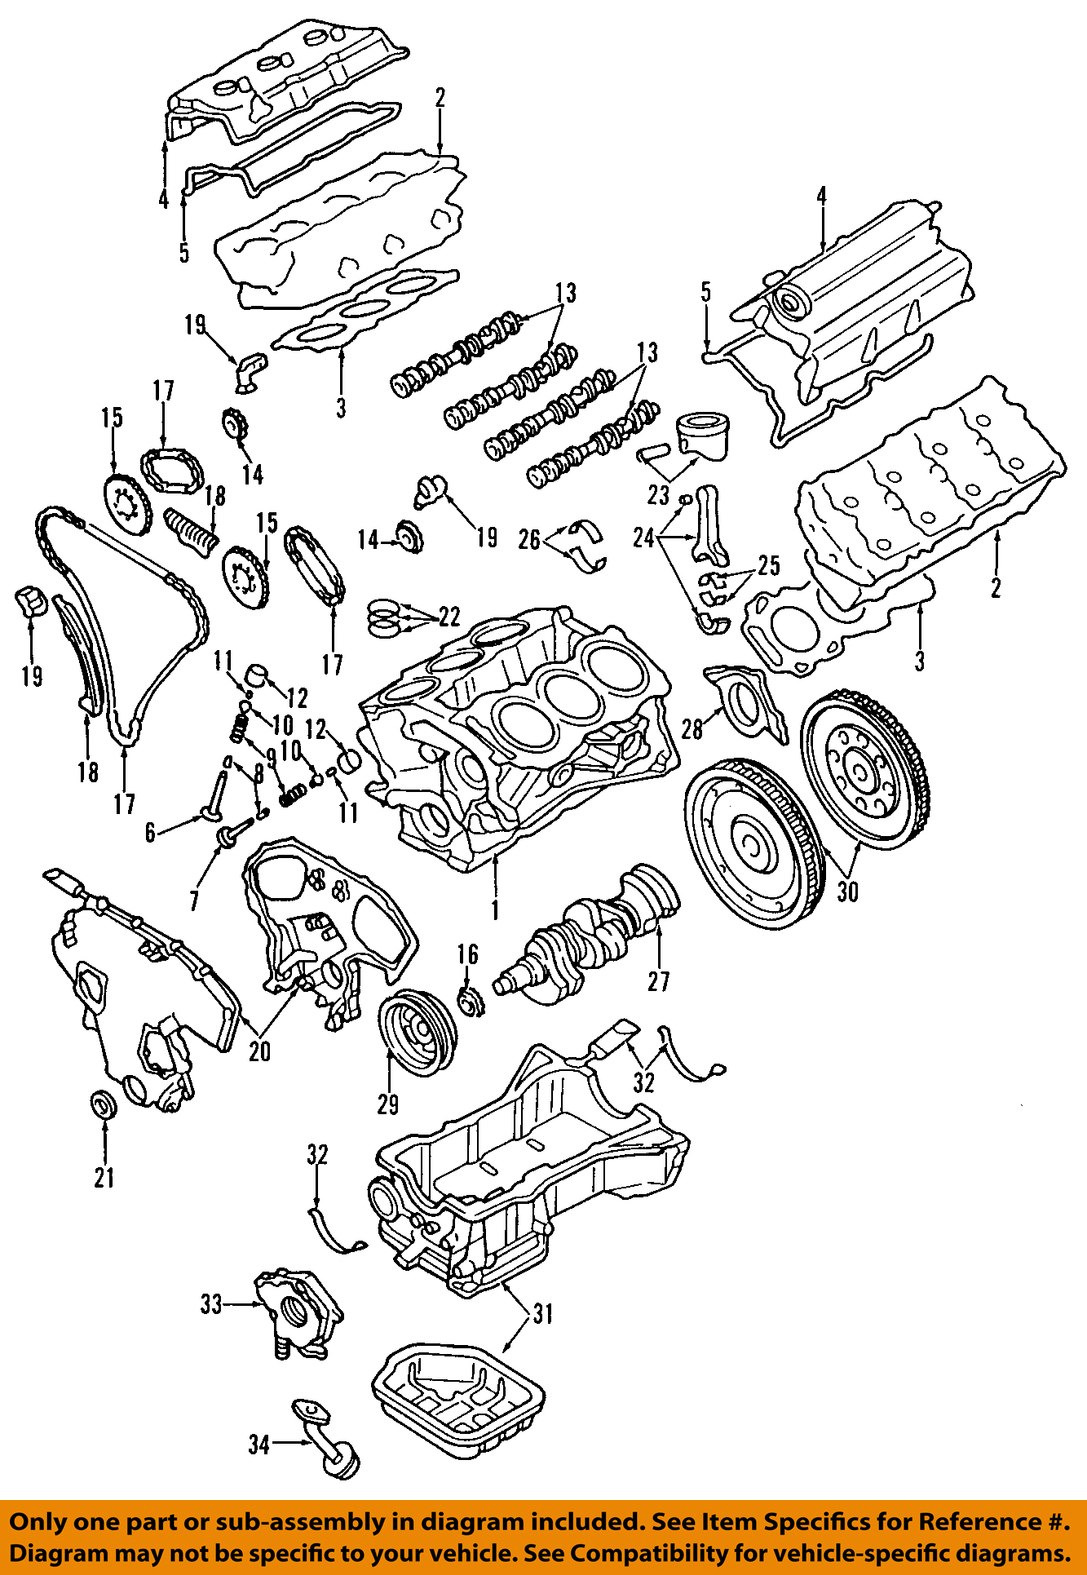 1999 Nissan Altima Valve Cover Gasket Recomended Car 1998 Engine Diagram For Partsgeek Source Parts Circuit Connection